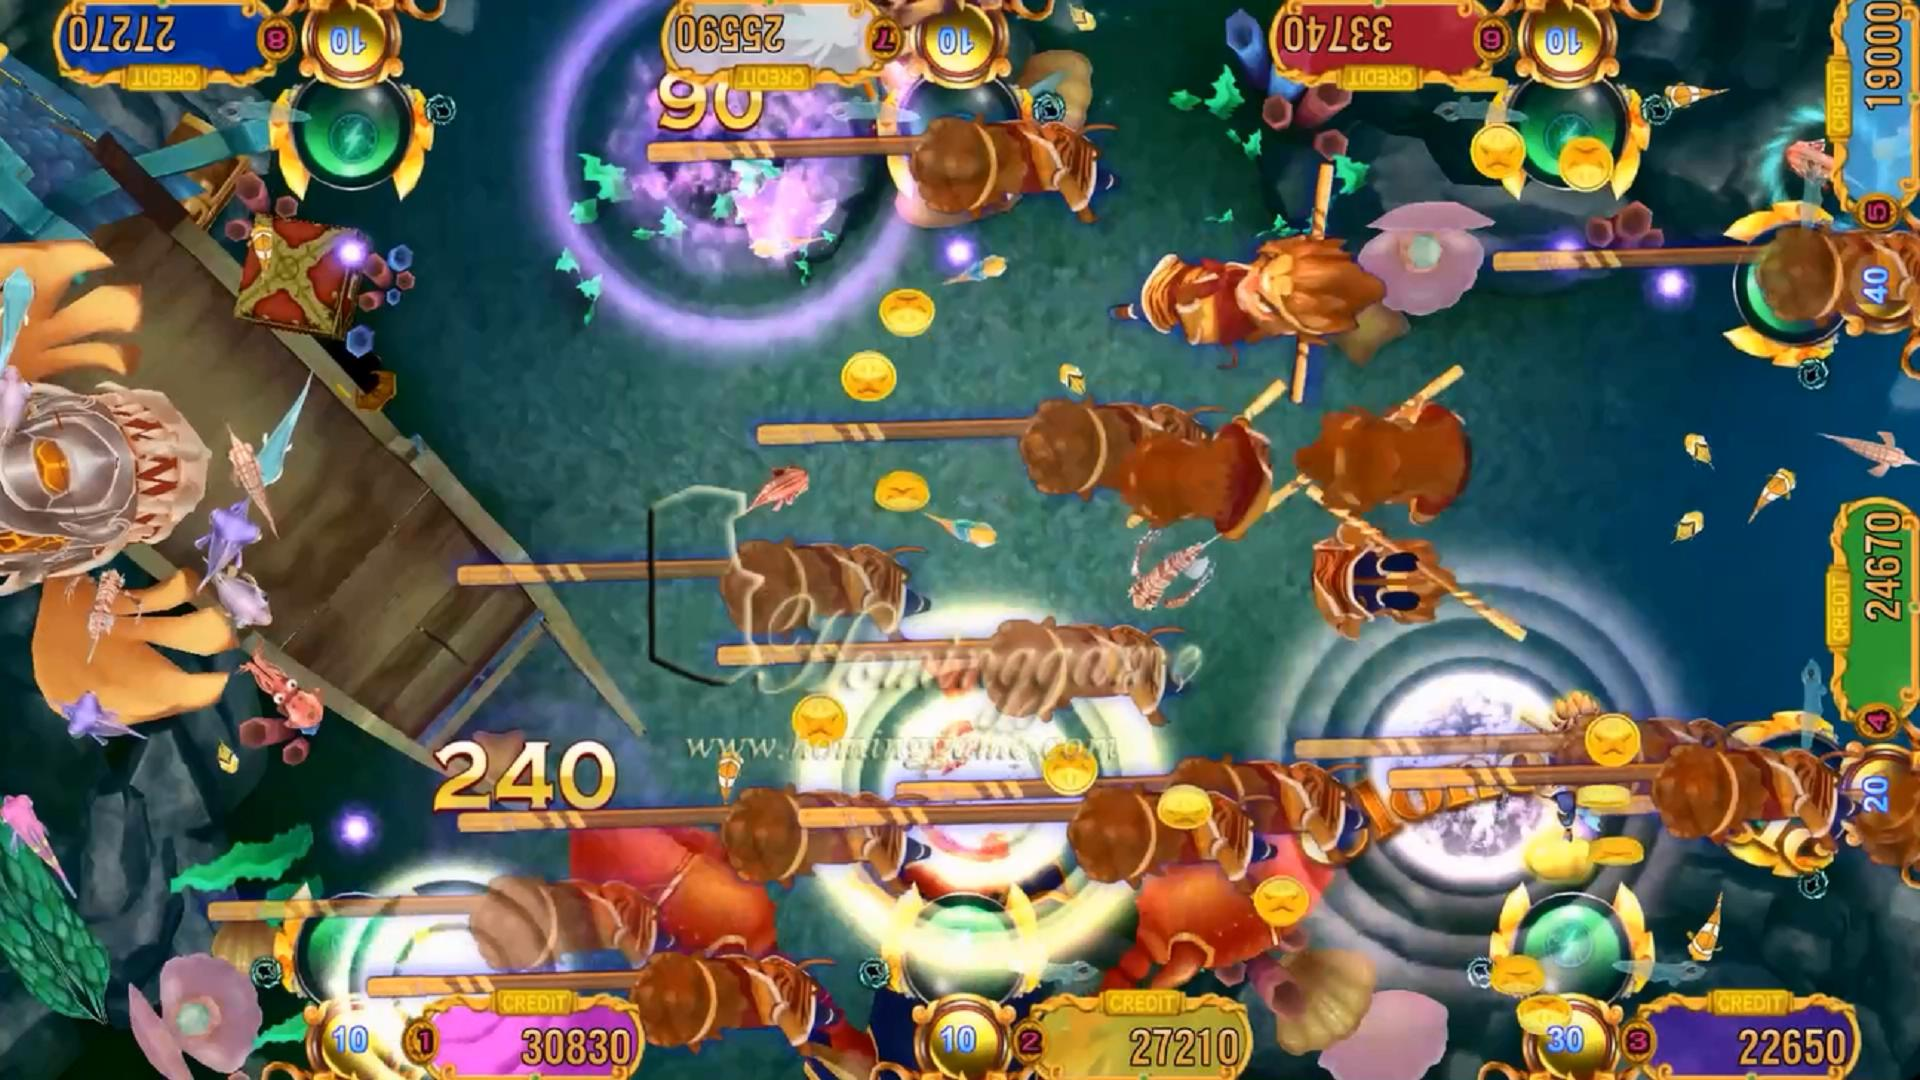 Fishing Game,Fishing Game Machine Supplier,3D KONG Fishing Arcade Table Game Machine,Er Lang 3D Fishing Game Machine,Kong Fishing Game Machine,2018 Newest 2 IN 1 Jackpot Fishing Game,Kong,Kong Fishing Game Machine,Kong Fishing Table Game Machine,Kong Jackpot Fishing Game Machine,Jackpot Fishing Game Machine,Fishing Game Machine,Fishing Table Game Machine,Dragon King Fishing Game Machine,WuKong Fishing Game Machine,Coin operated Fishing Game Machine,Game Machine,Gaming Machine,Gambling Machine,Electrical Slot Gaming Machine,Amusement Park Game Euipment,Family Entertainment,Entertainment Game Machine,Arcade Game Machine